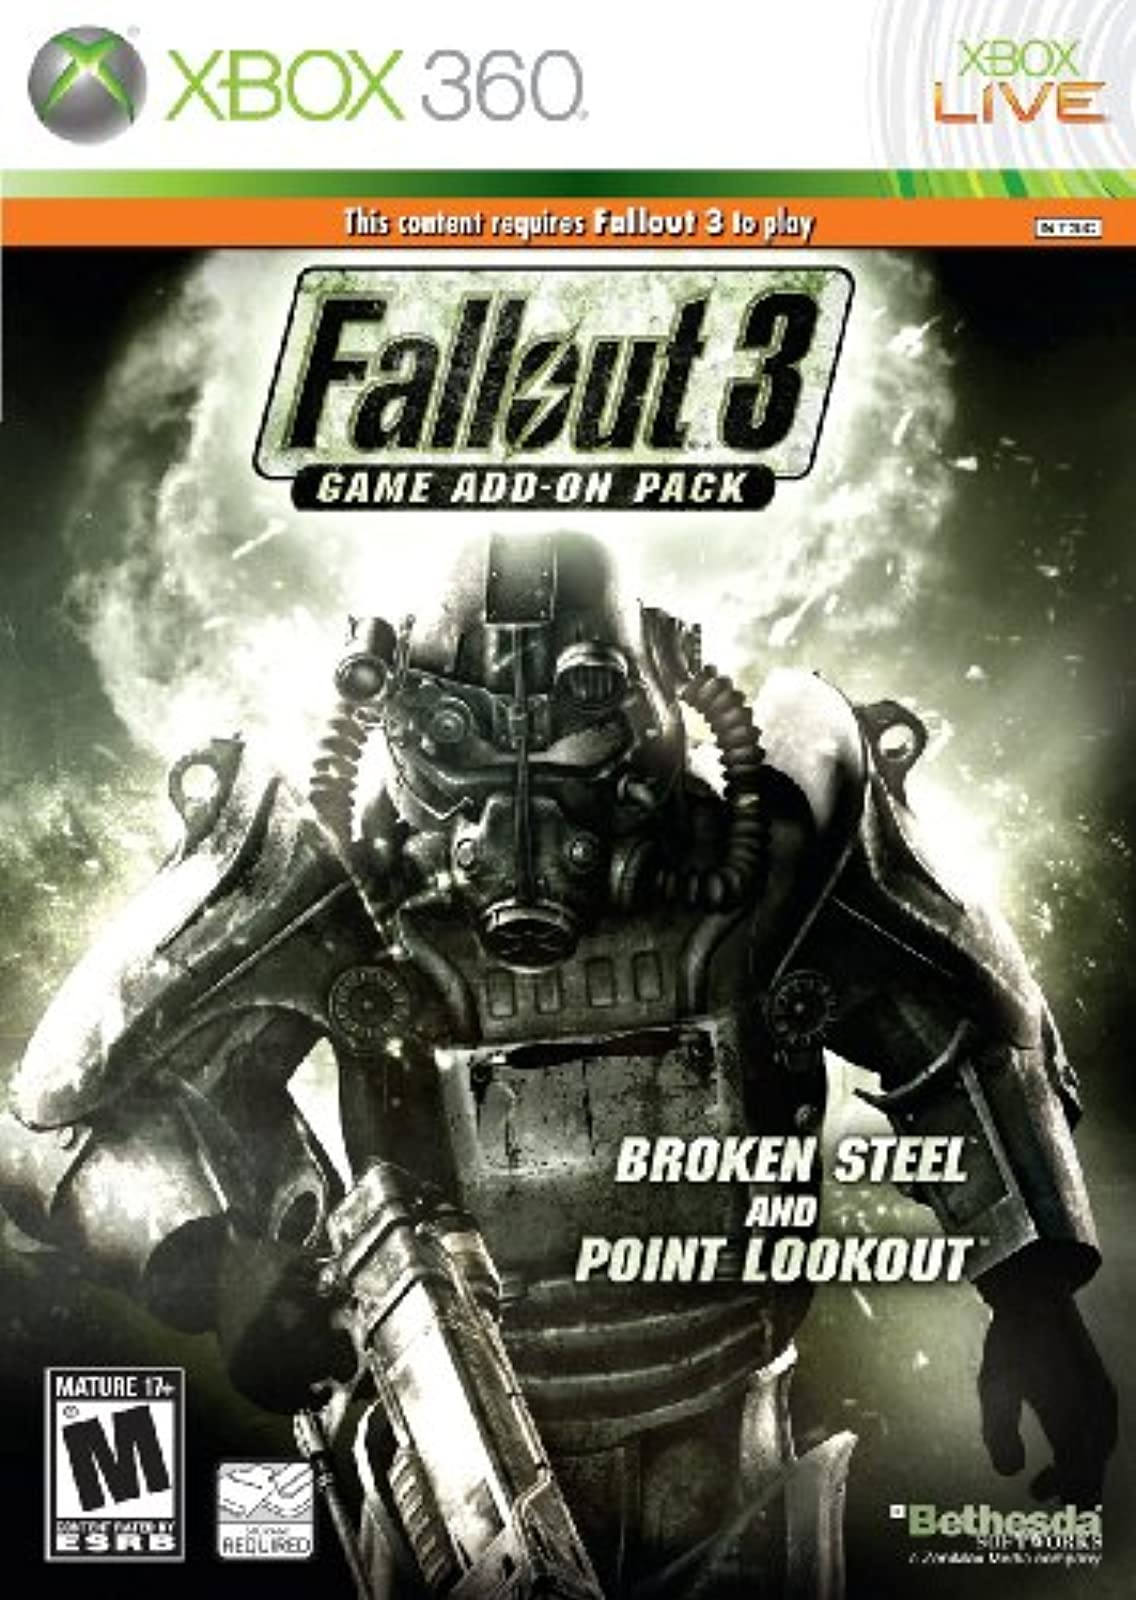 Fallout 3 Game Add-On Pack: Broken Steel And Point Lookout For Xbox 360 RPG